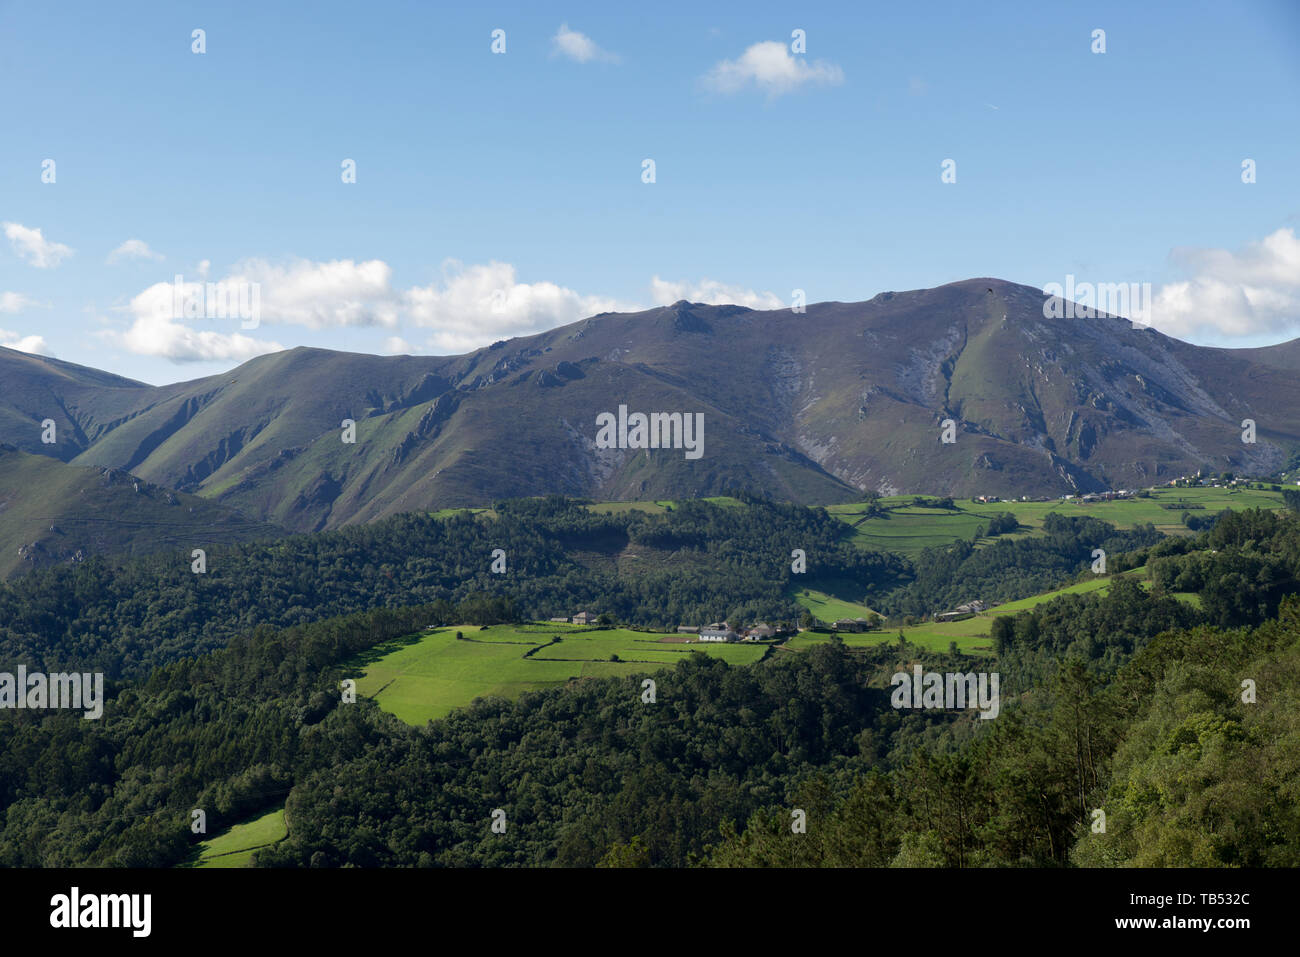 Getrennte Farmen in einer Gebirgslandschaft in Asturien, Spanien. / Isolated farms in a mountainous landscape in Asturias, Spain. - Stock Image